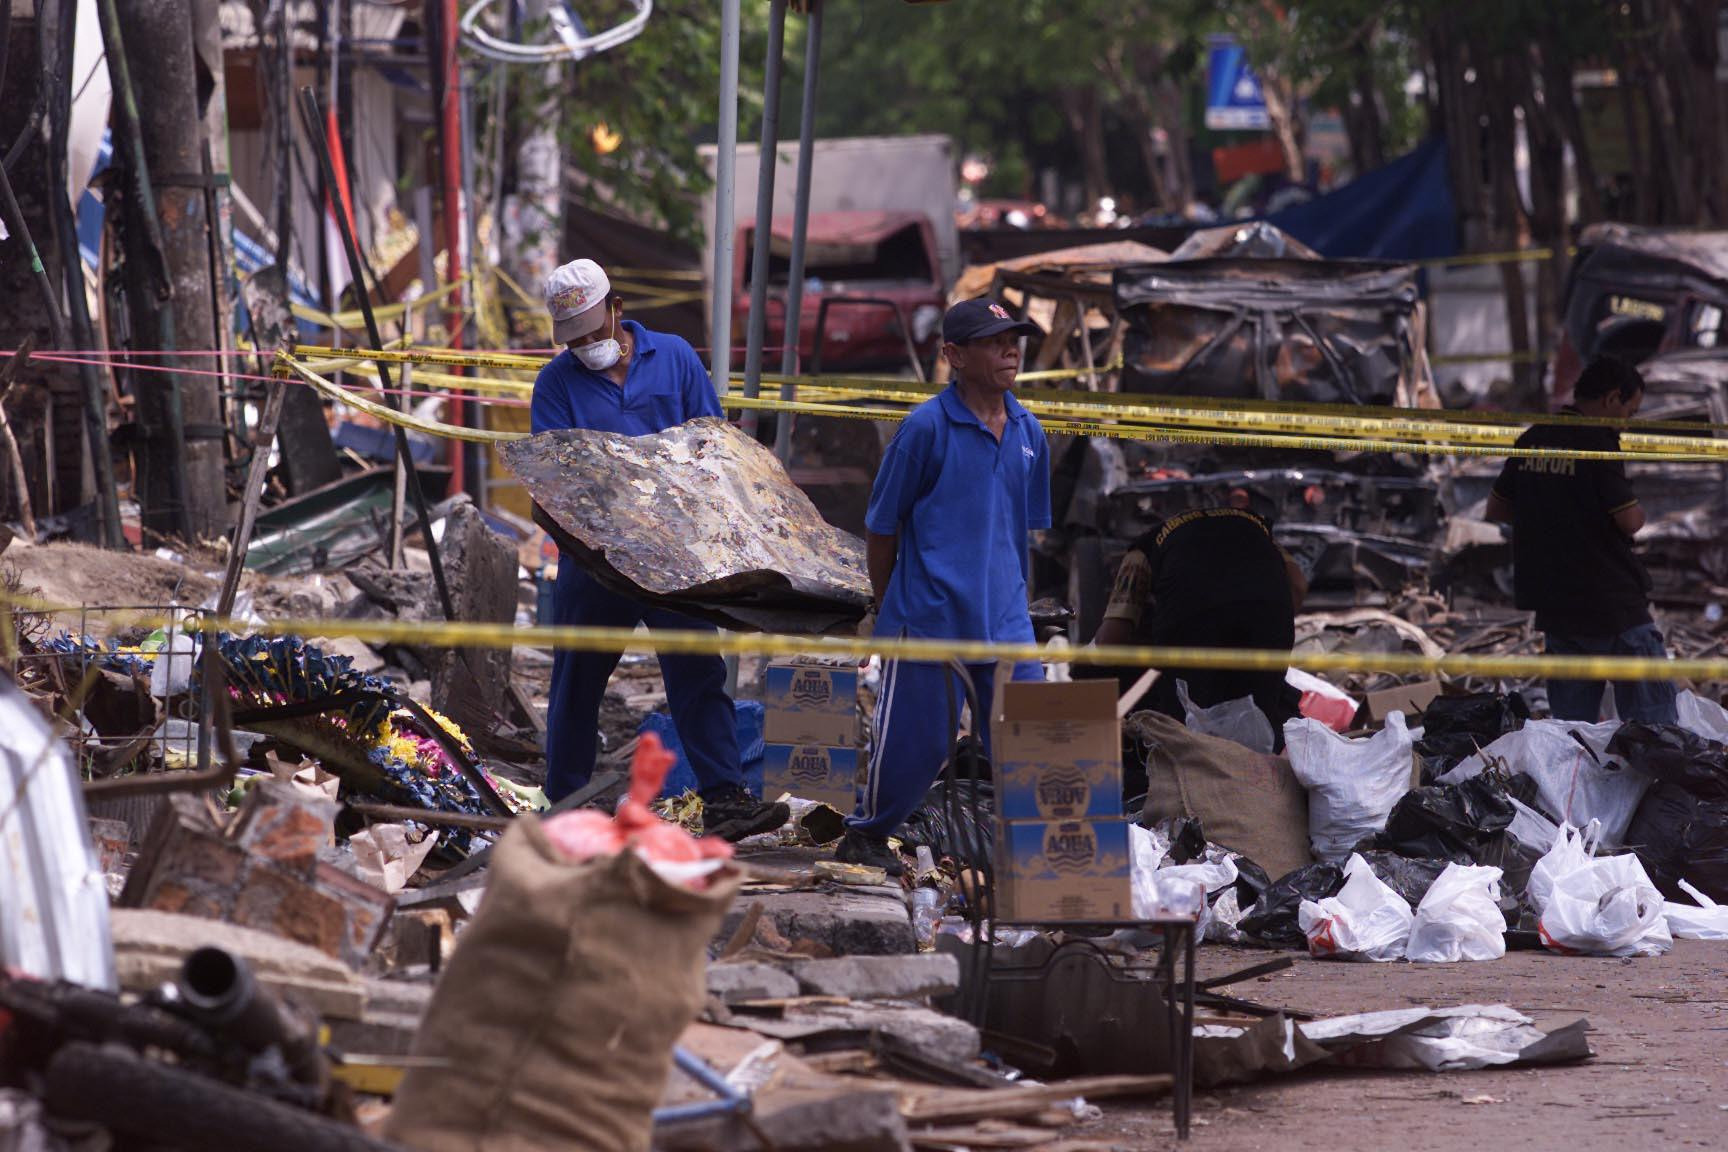 File photo dated Oct. 16, 2012, of investigators removing debris from the Sari Club in Kuta, Bali, bombed by the extremist group Jemaah Islamiyah